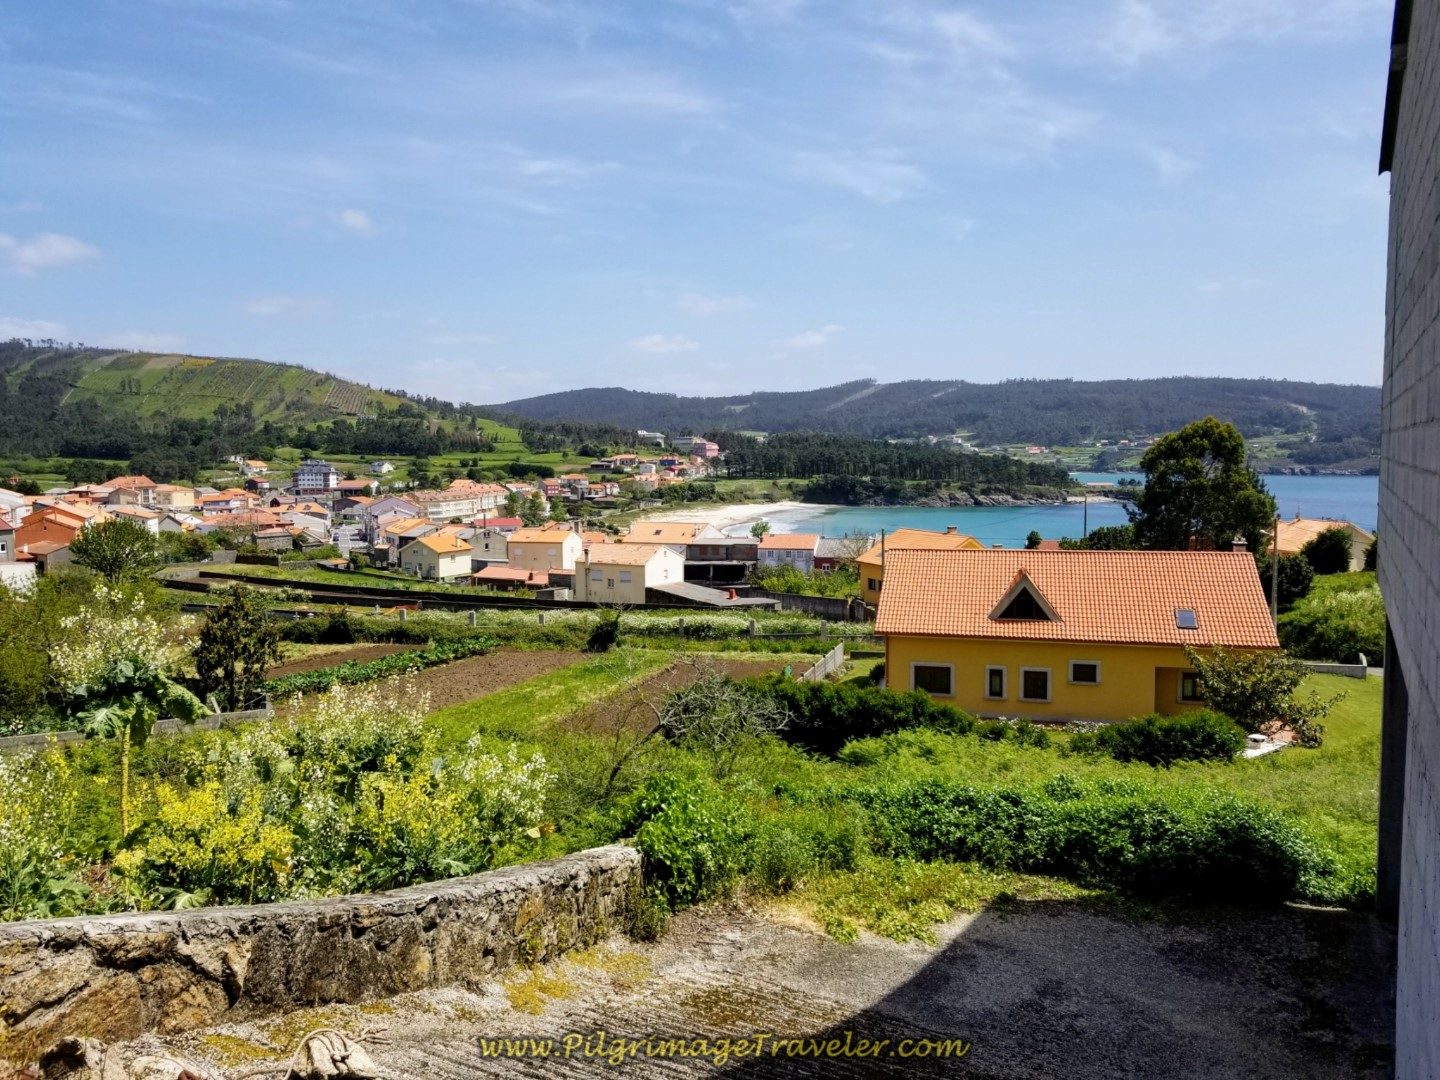 Lofty Views of Sardiñeiro Bay and Beach on day three of the Camino Finisterre